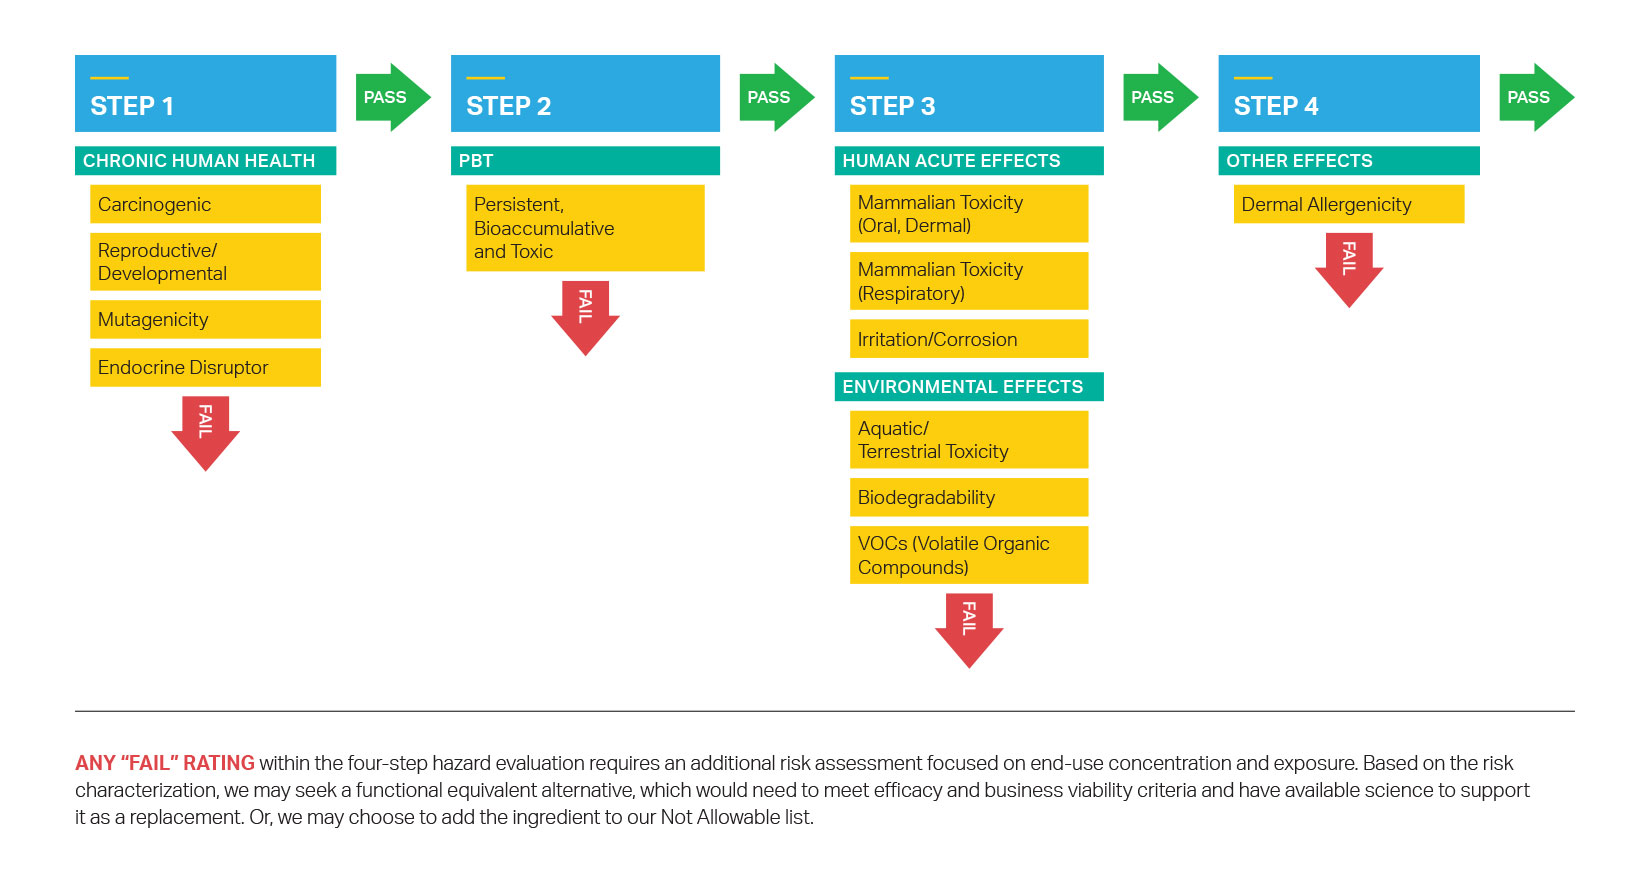 SC Johnson's four-step hazard evaluation for product ingredients